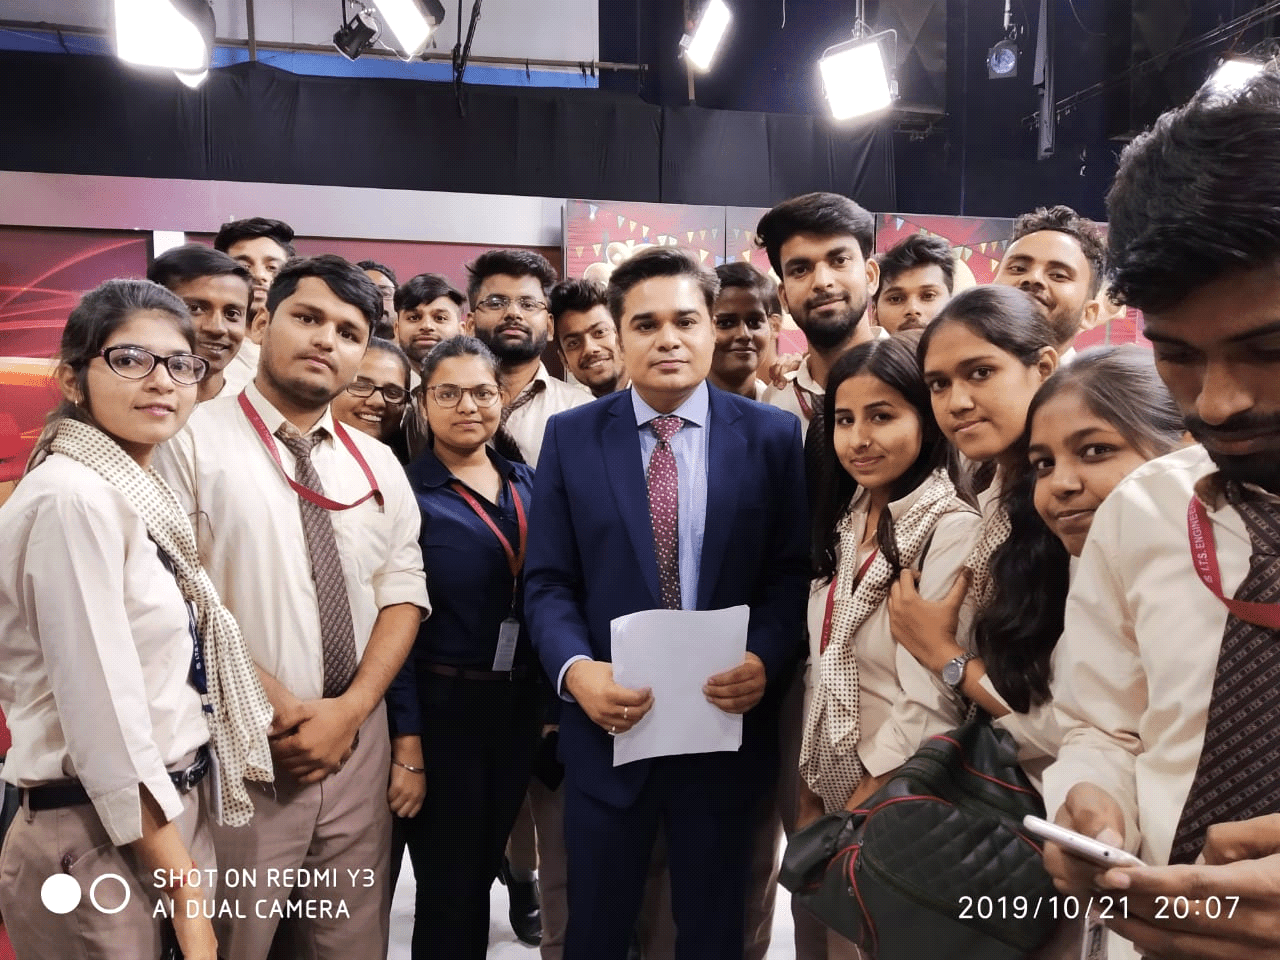 Student Visit to News 18 at Film City, Noida